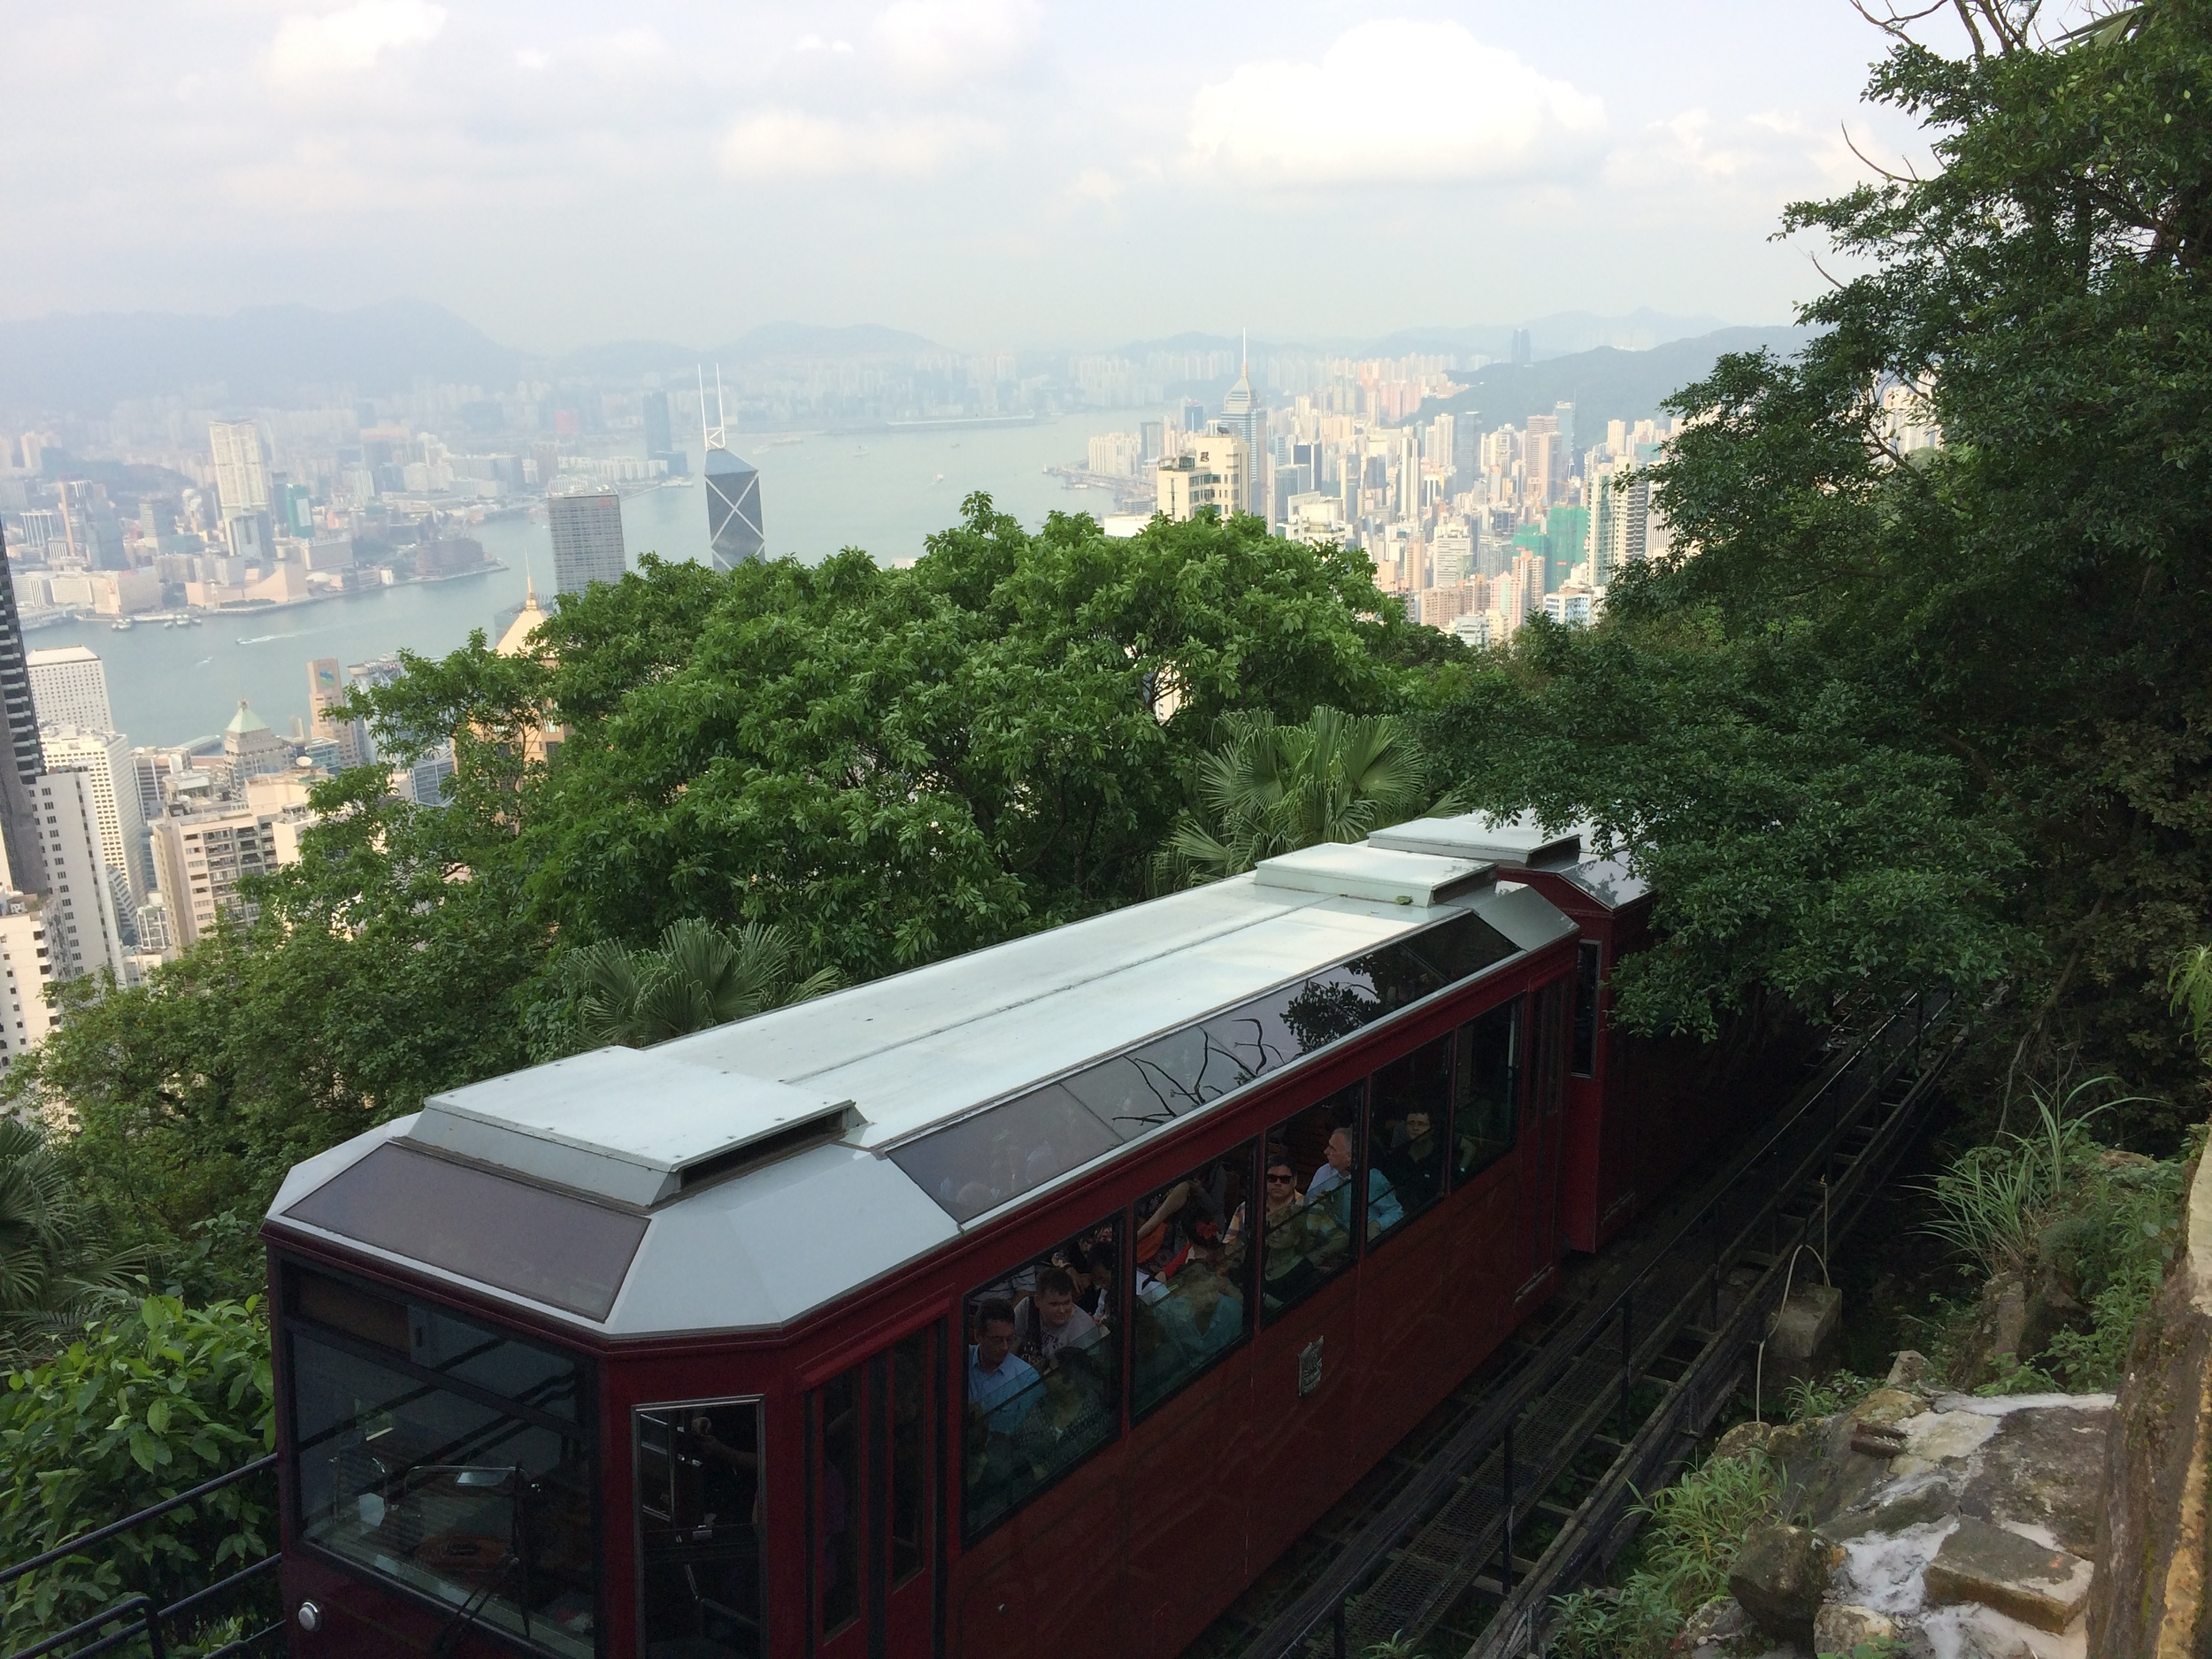 The Peak Tram takes 7min to reach the top